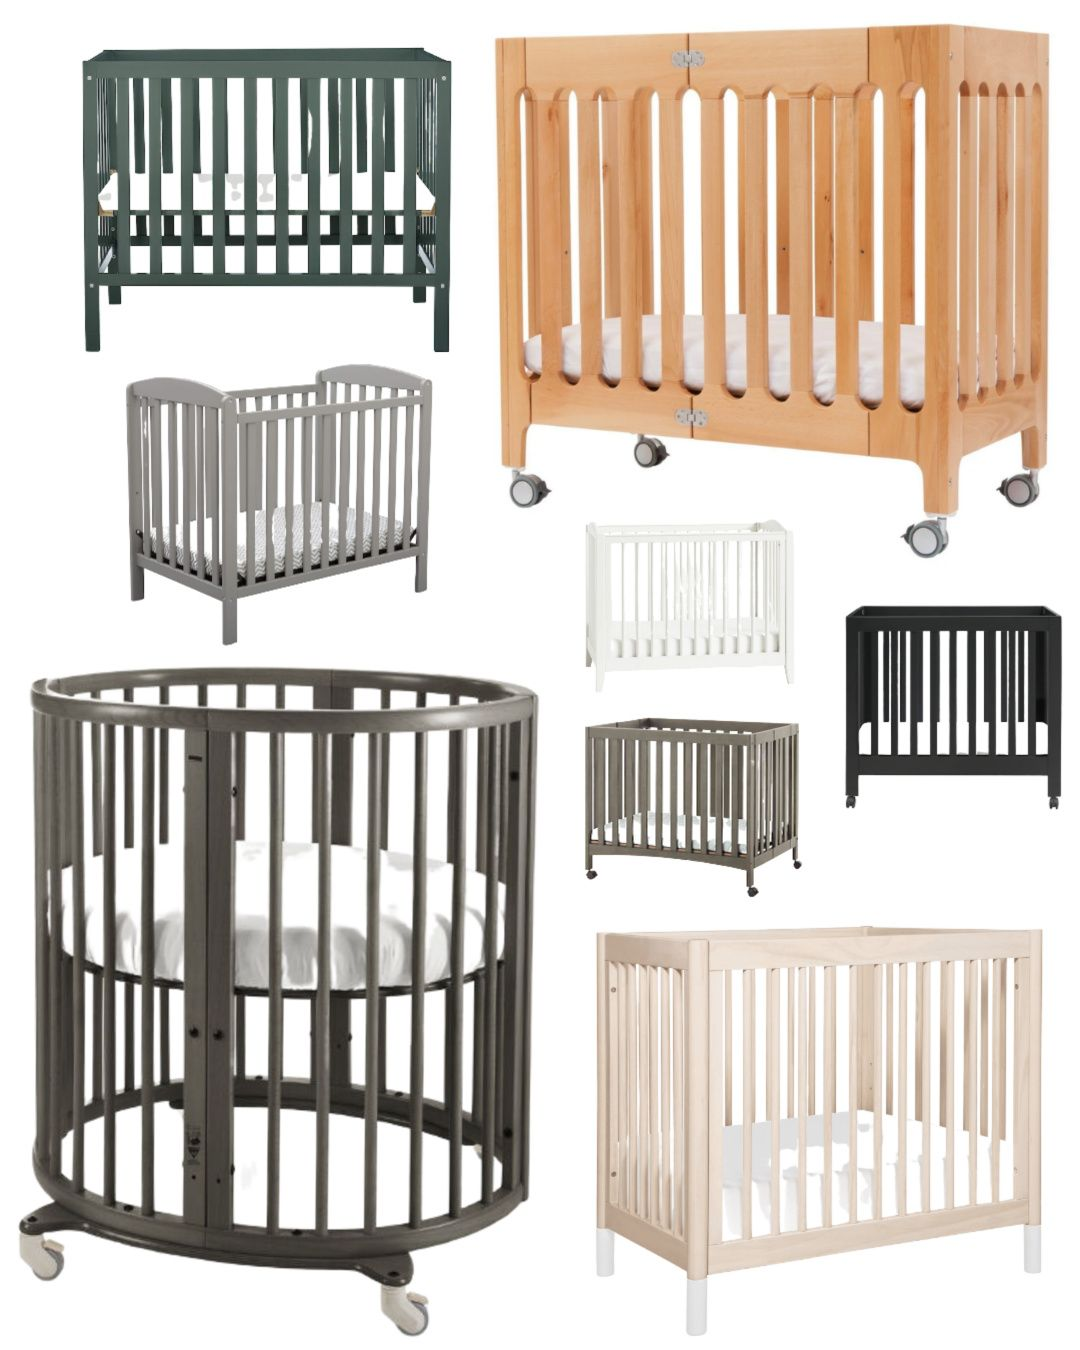 Best Mini Cribs For Small Spaces Best Small Cribs Raise Magazine Cribs For Small Spaces Cribs Mini Crib